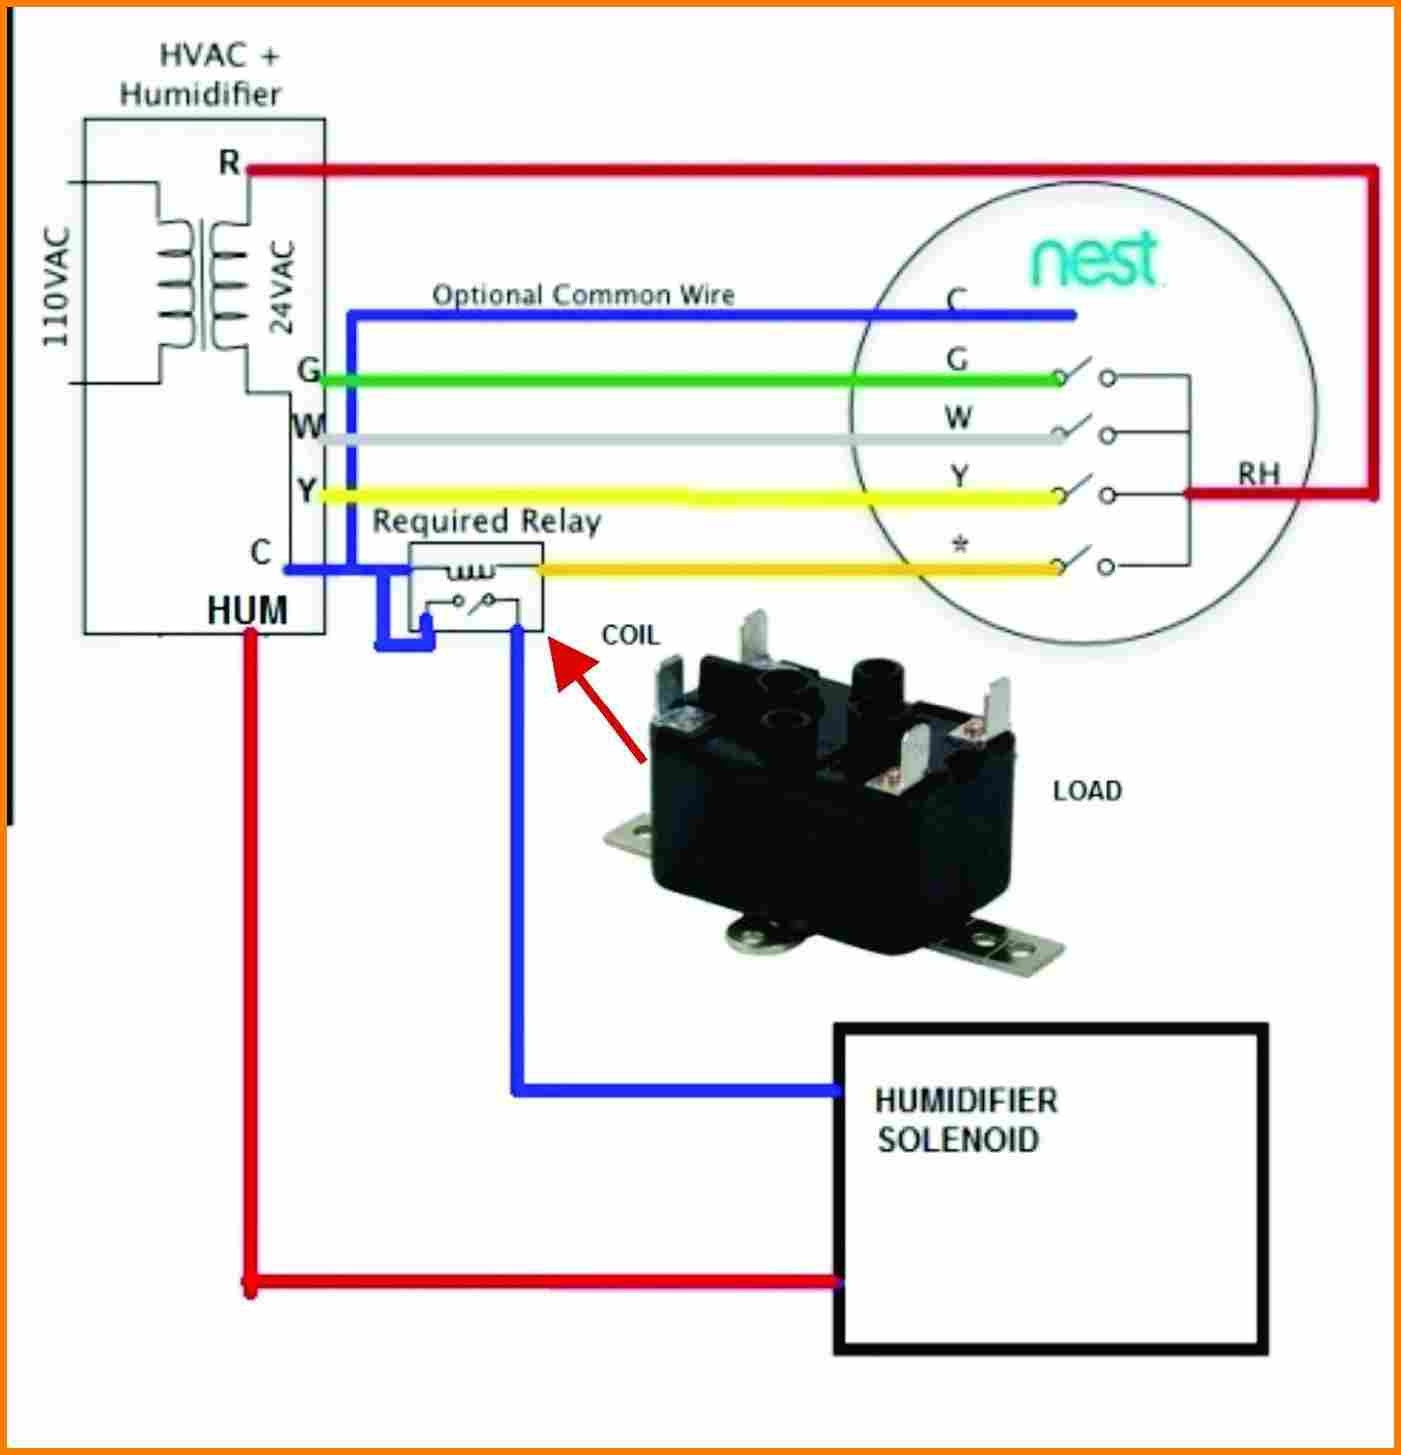 Er 5258 Nest Thermostat Wiring Diagram Also Nest Thermostat Wiring Diagram As Wiring Diagram